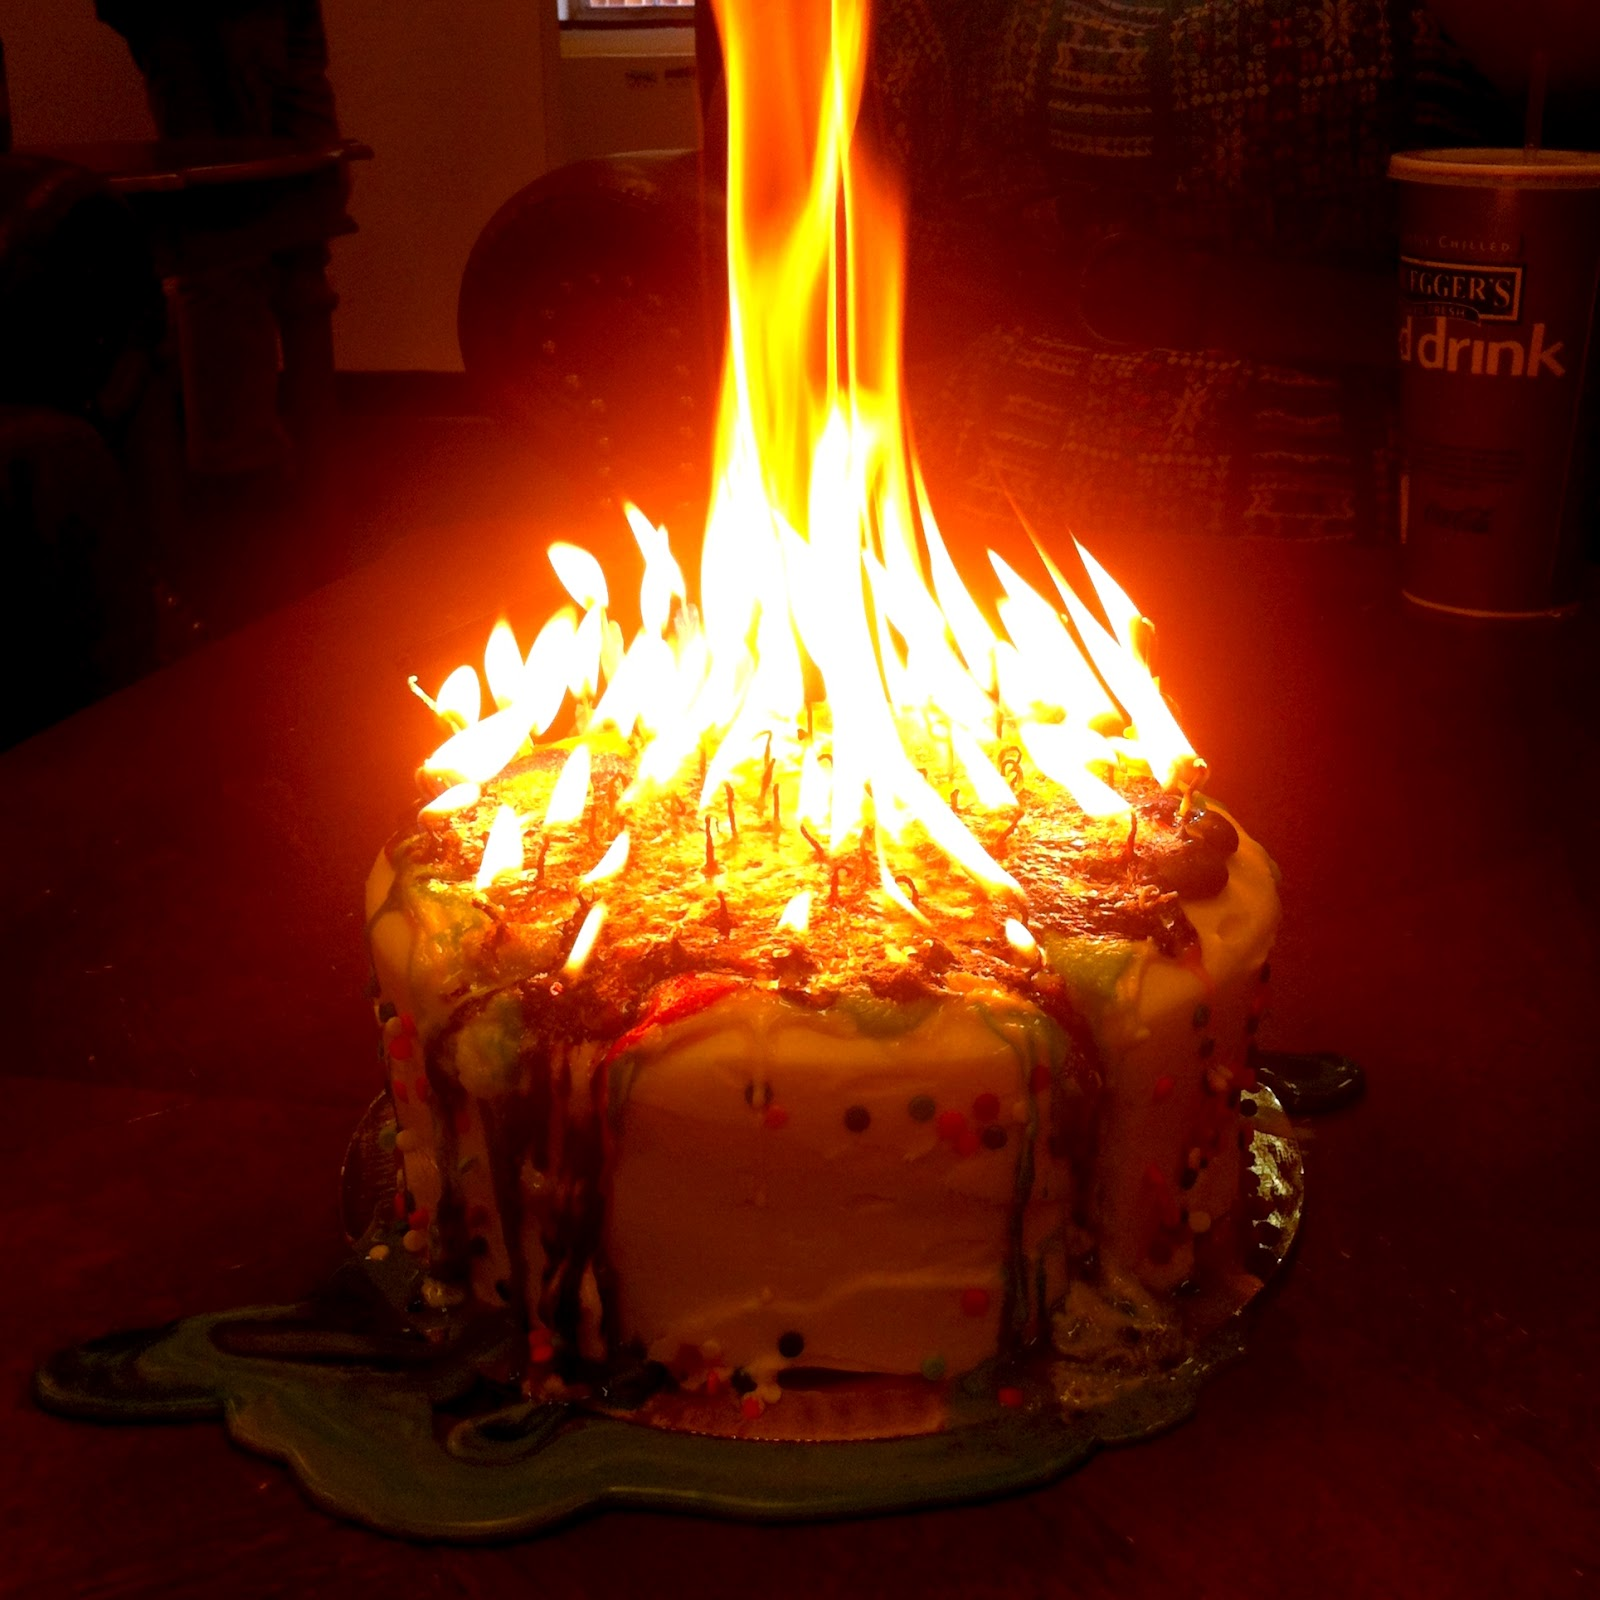 Not Recommended Putting Almost 80 Candles On A Single Cake